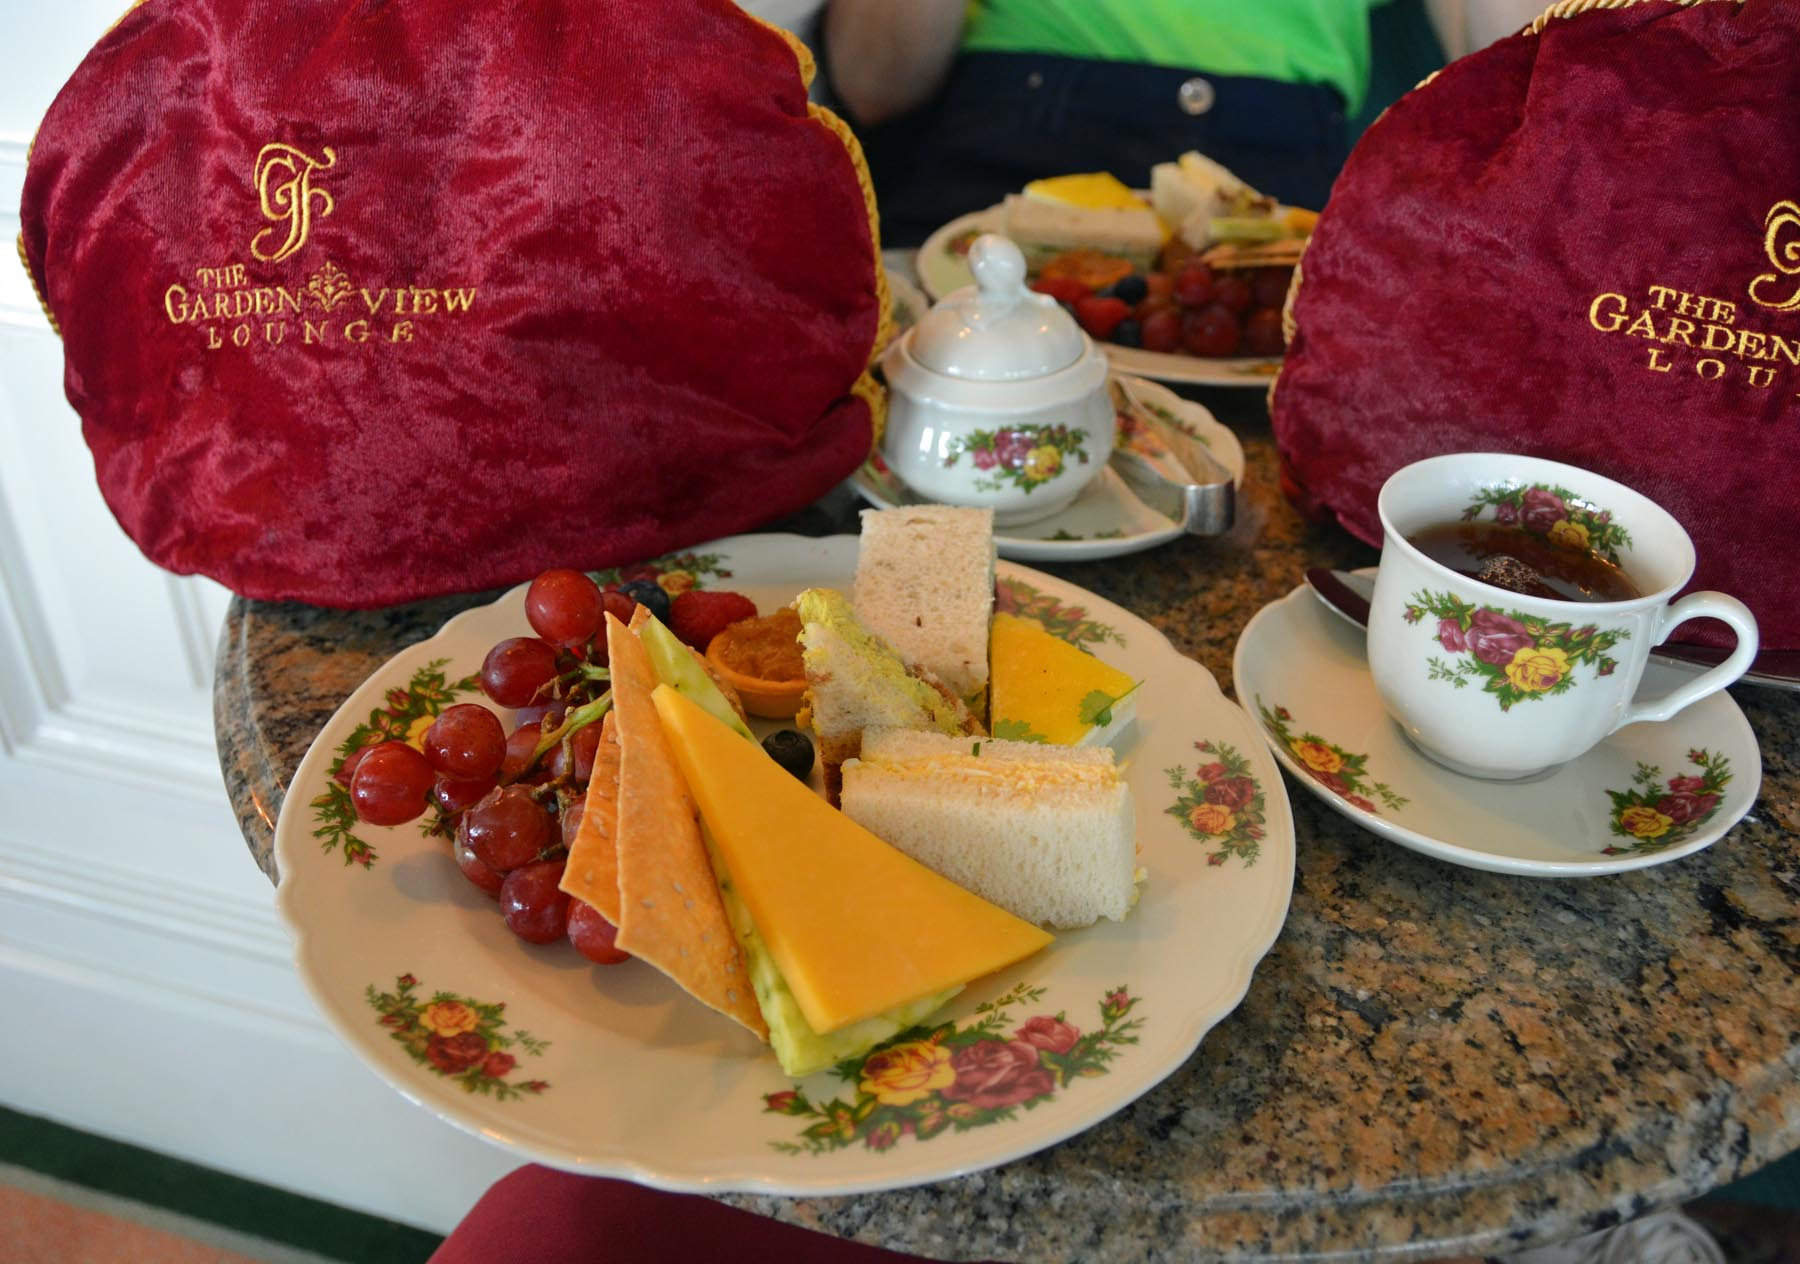 Today S Disney Photo Afternoon Tea At Grand Floridian A Gator In Naples